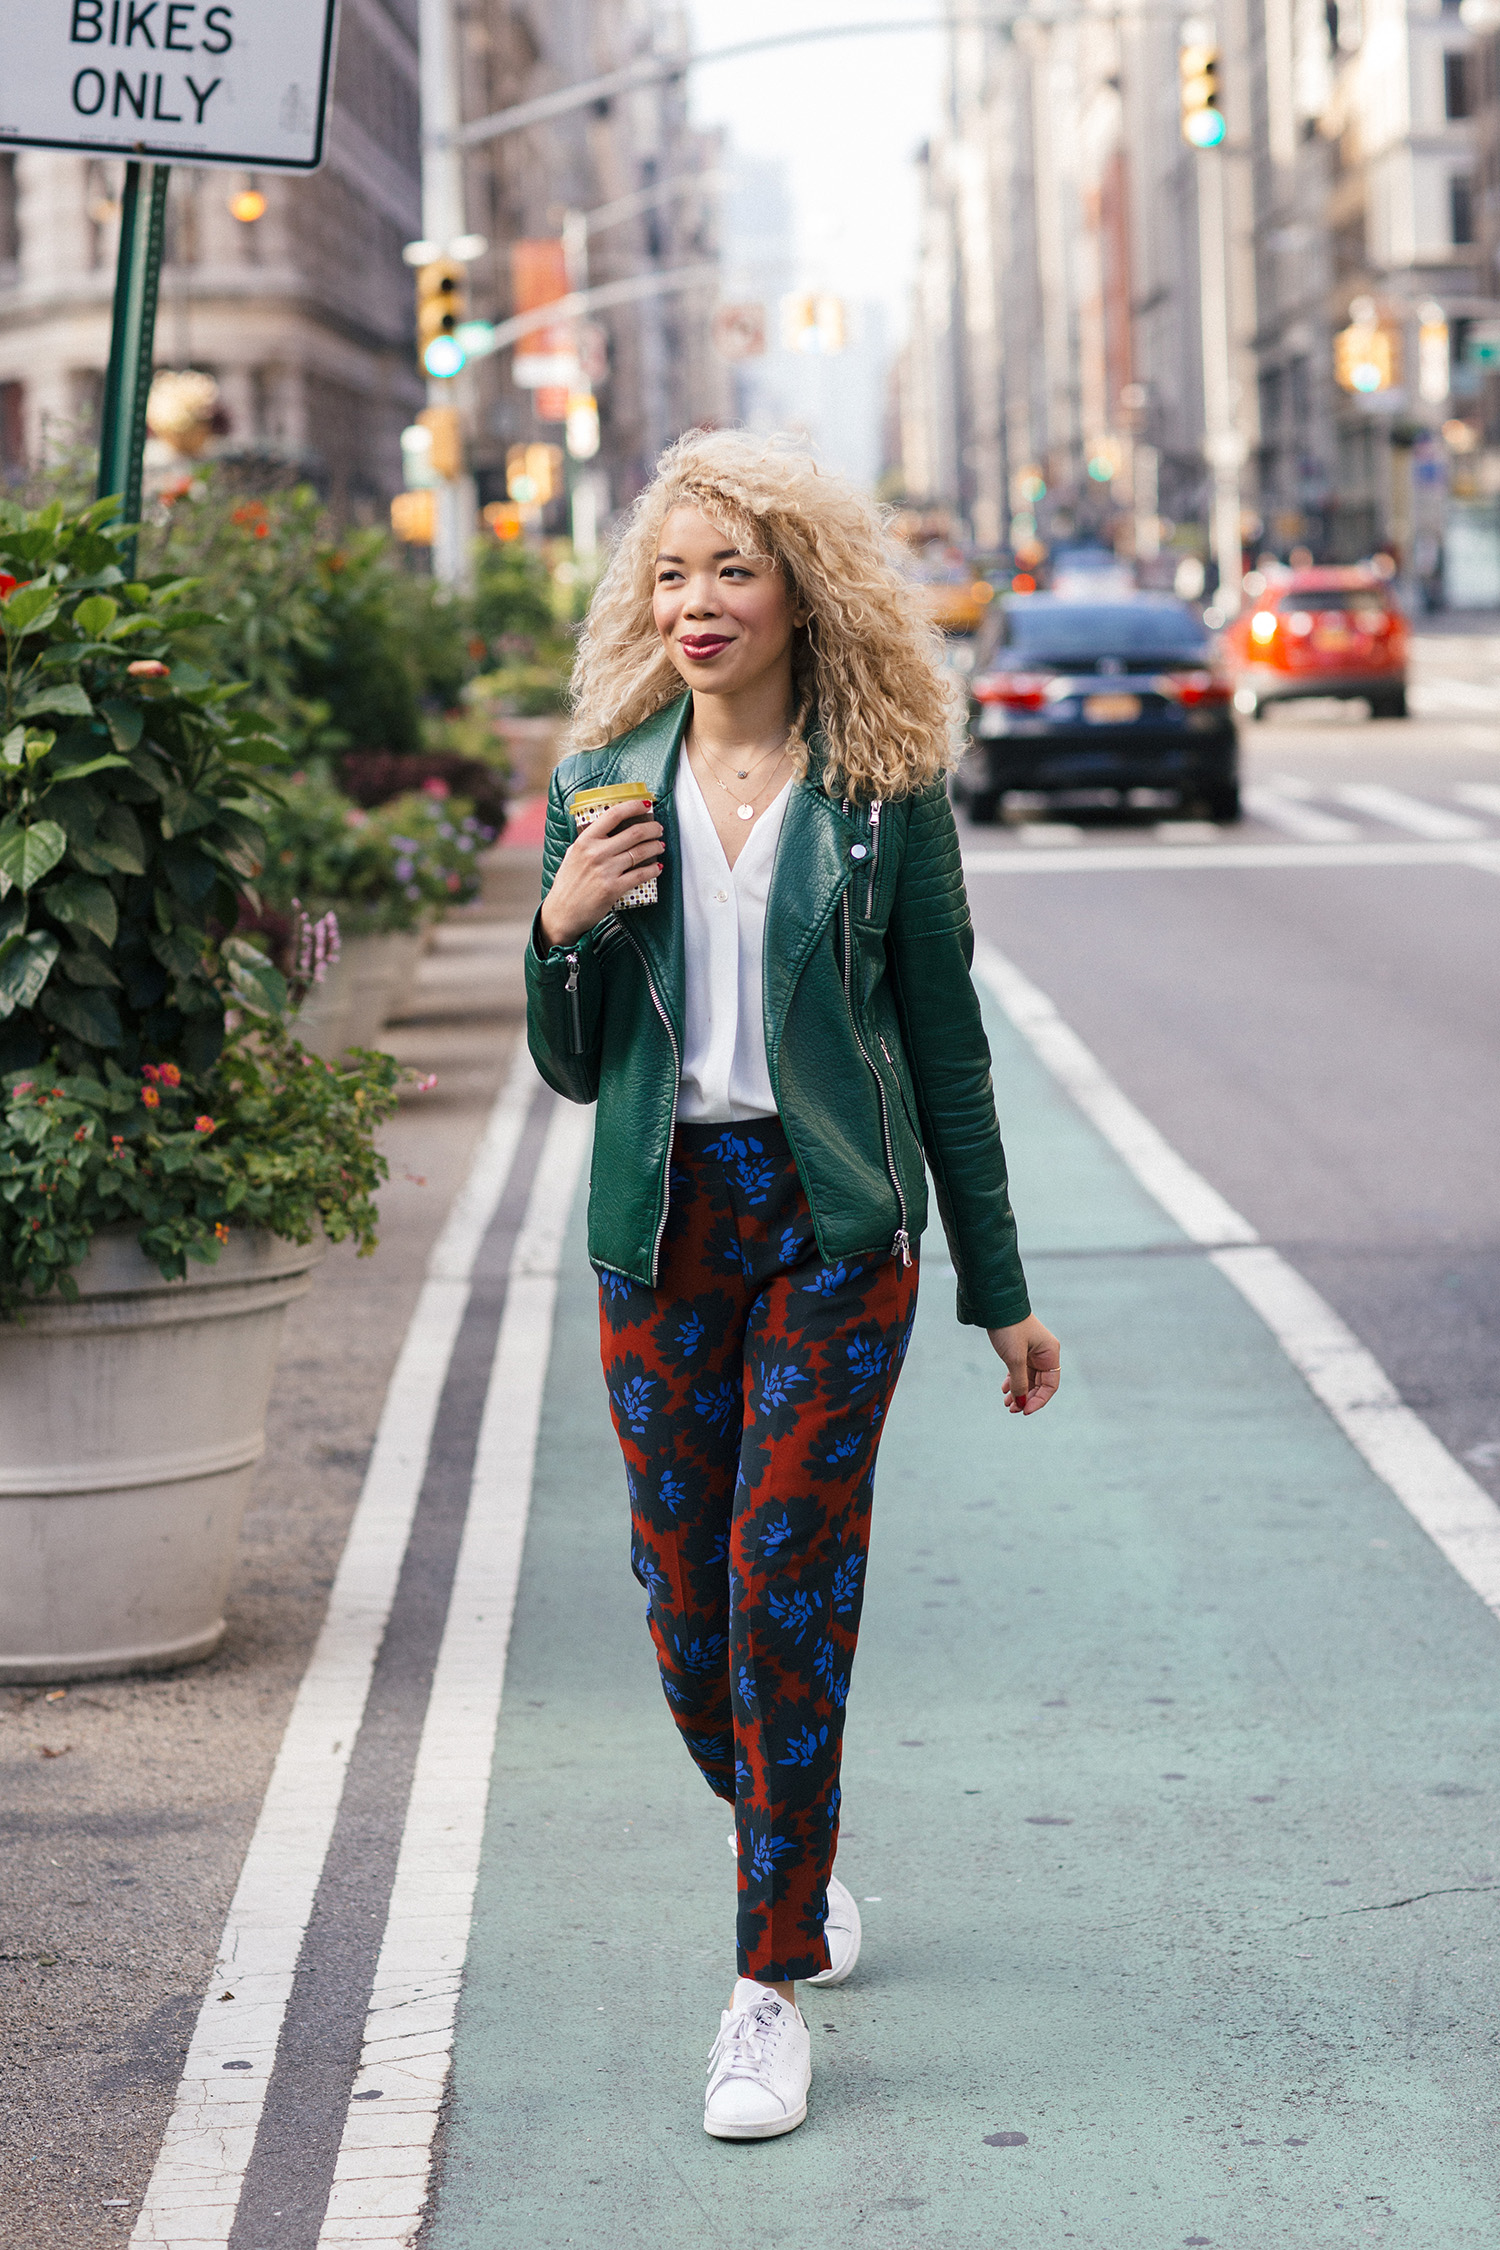 green-leather-jacket-floral-pants.jpg